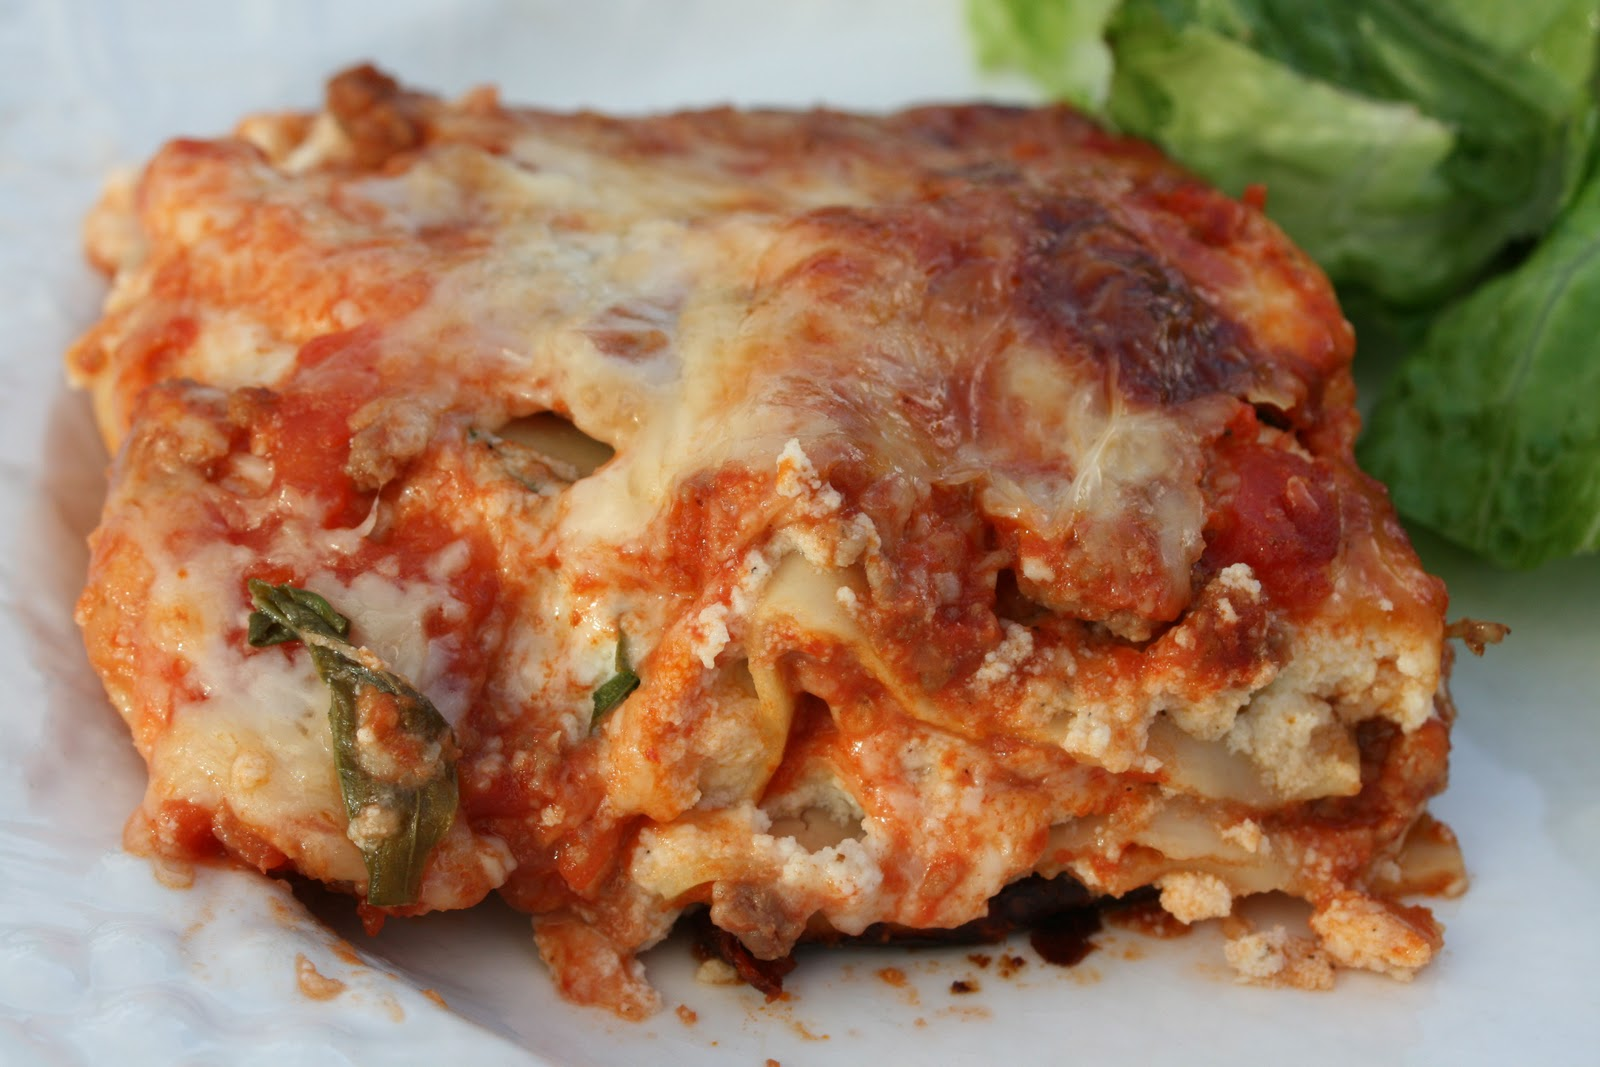 Food and Garden Dailies: Easy Meat Lasagna with Hearty Tomato-Meat ...